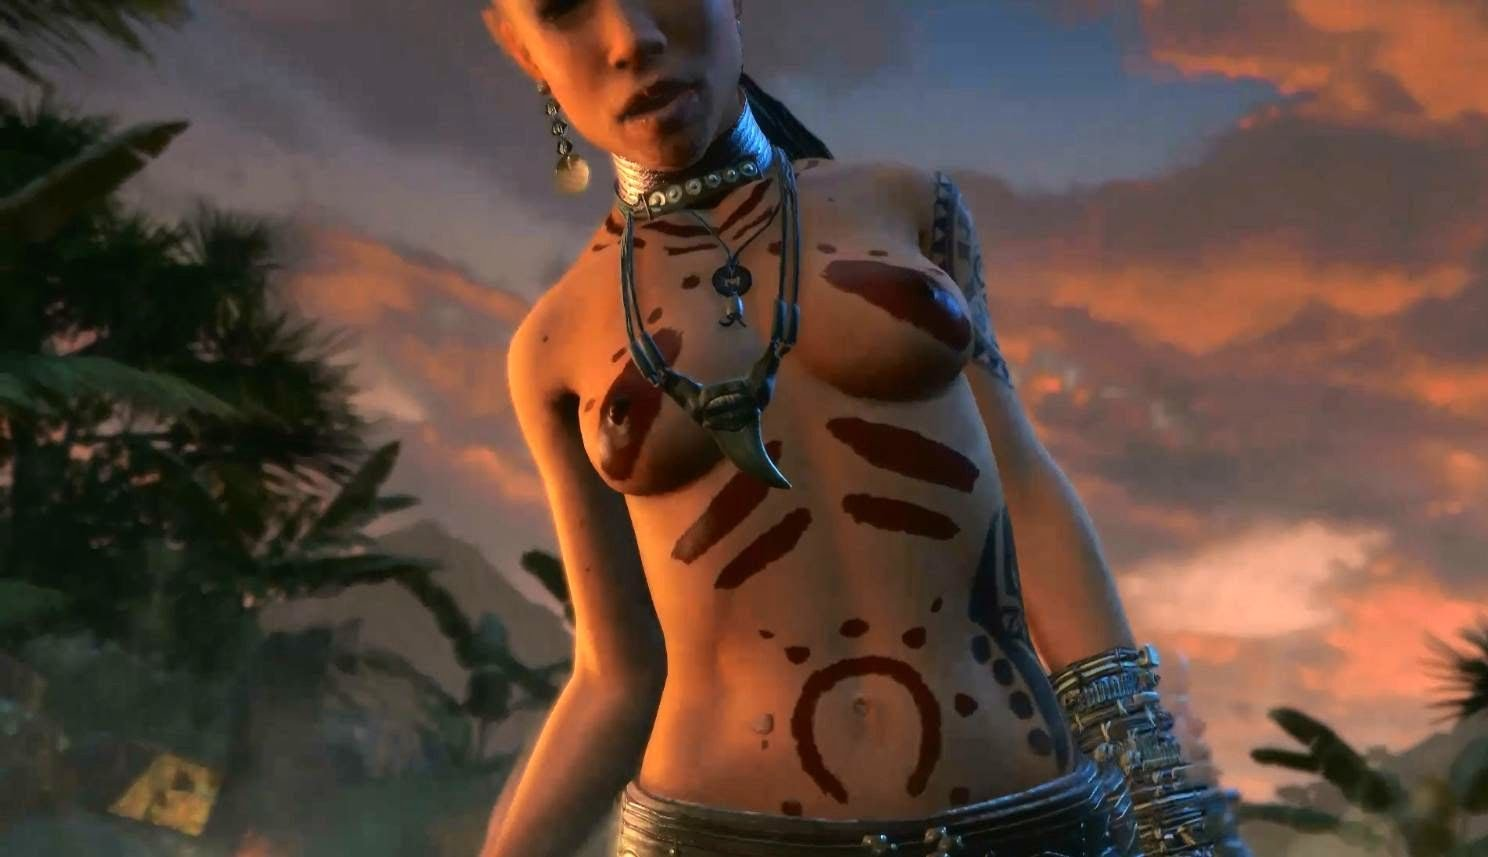 Nude girls from far cry pornos photos